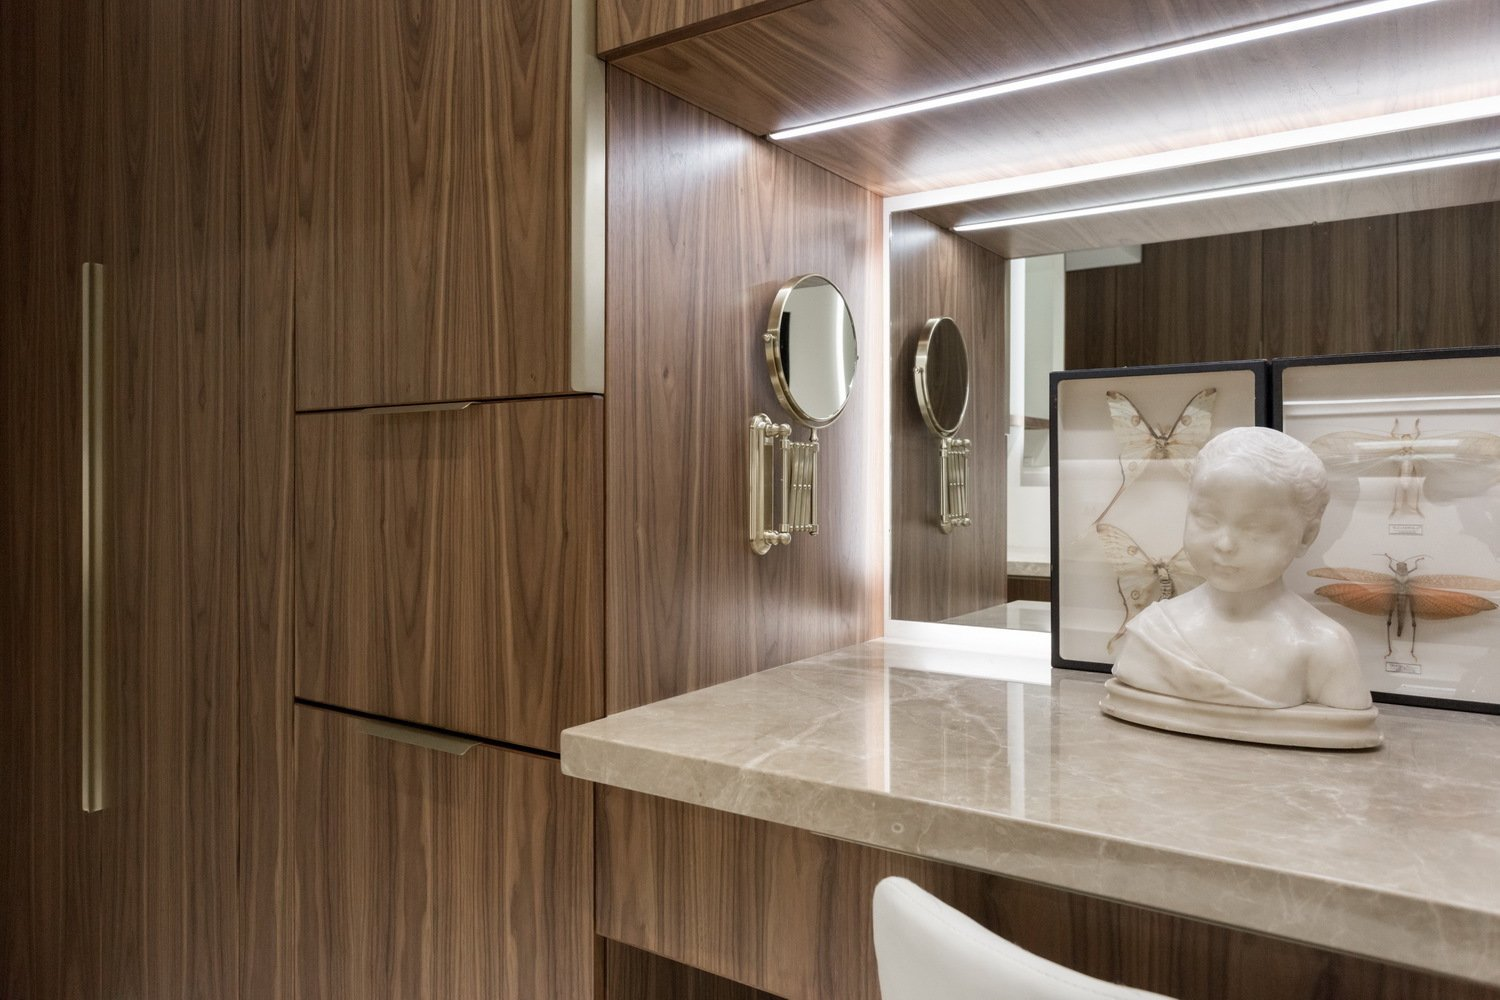 The Make Up counter is integrated into the storage units. Thompson Hotel Private Suite by ANTHONY PROVENZANO ARCHITECTS